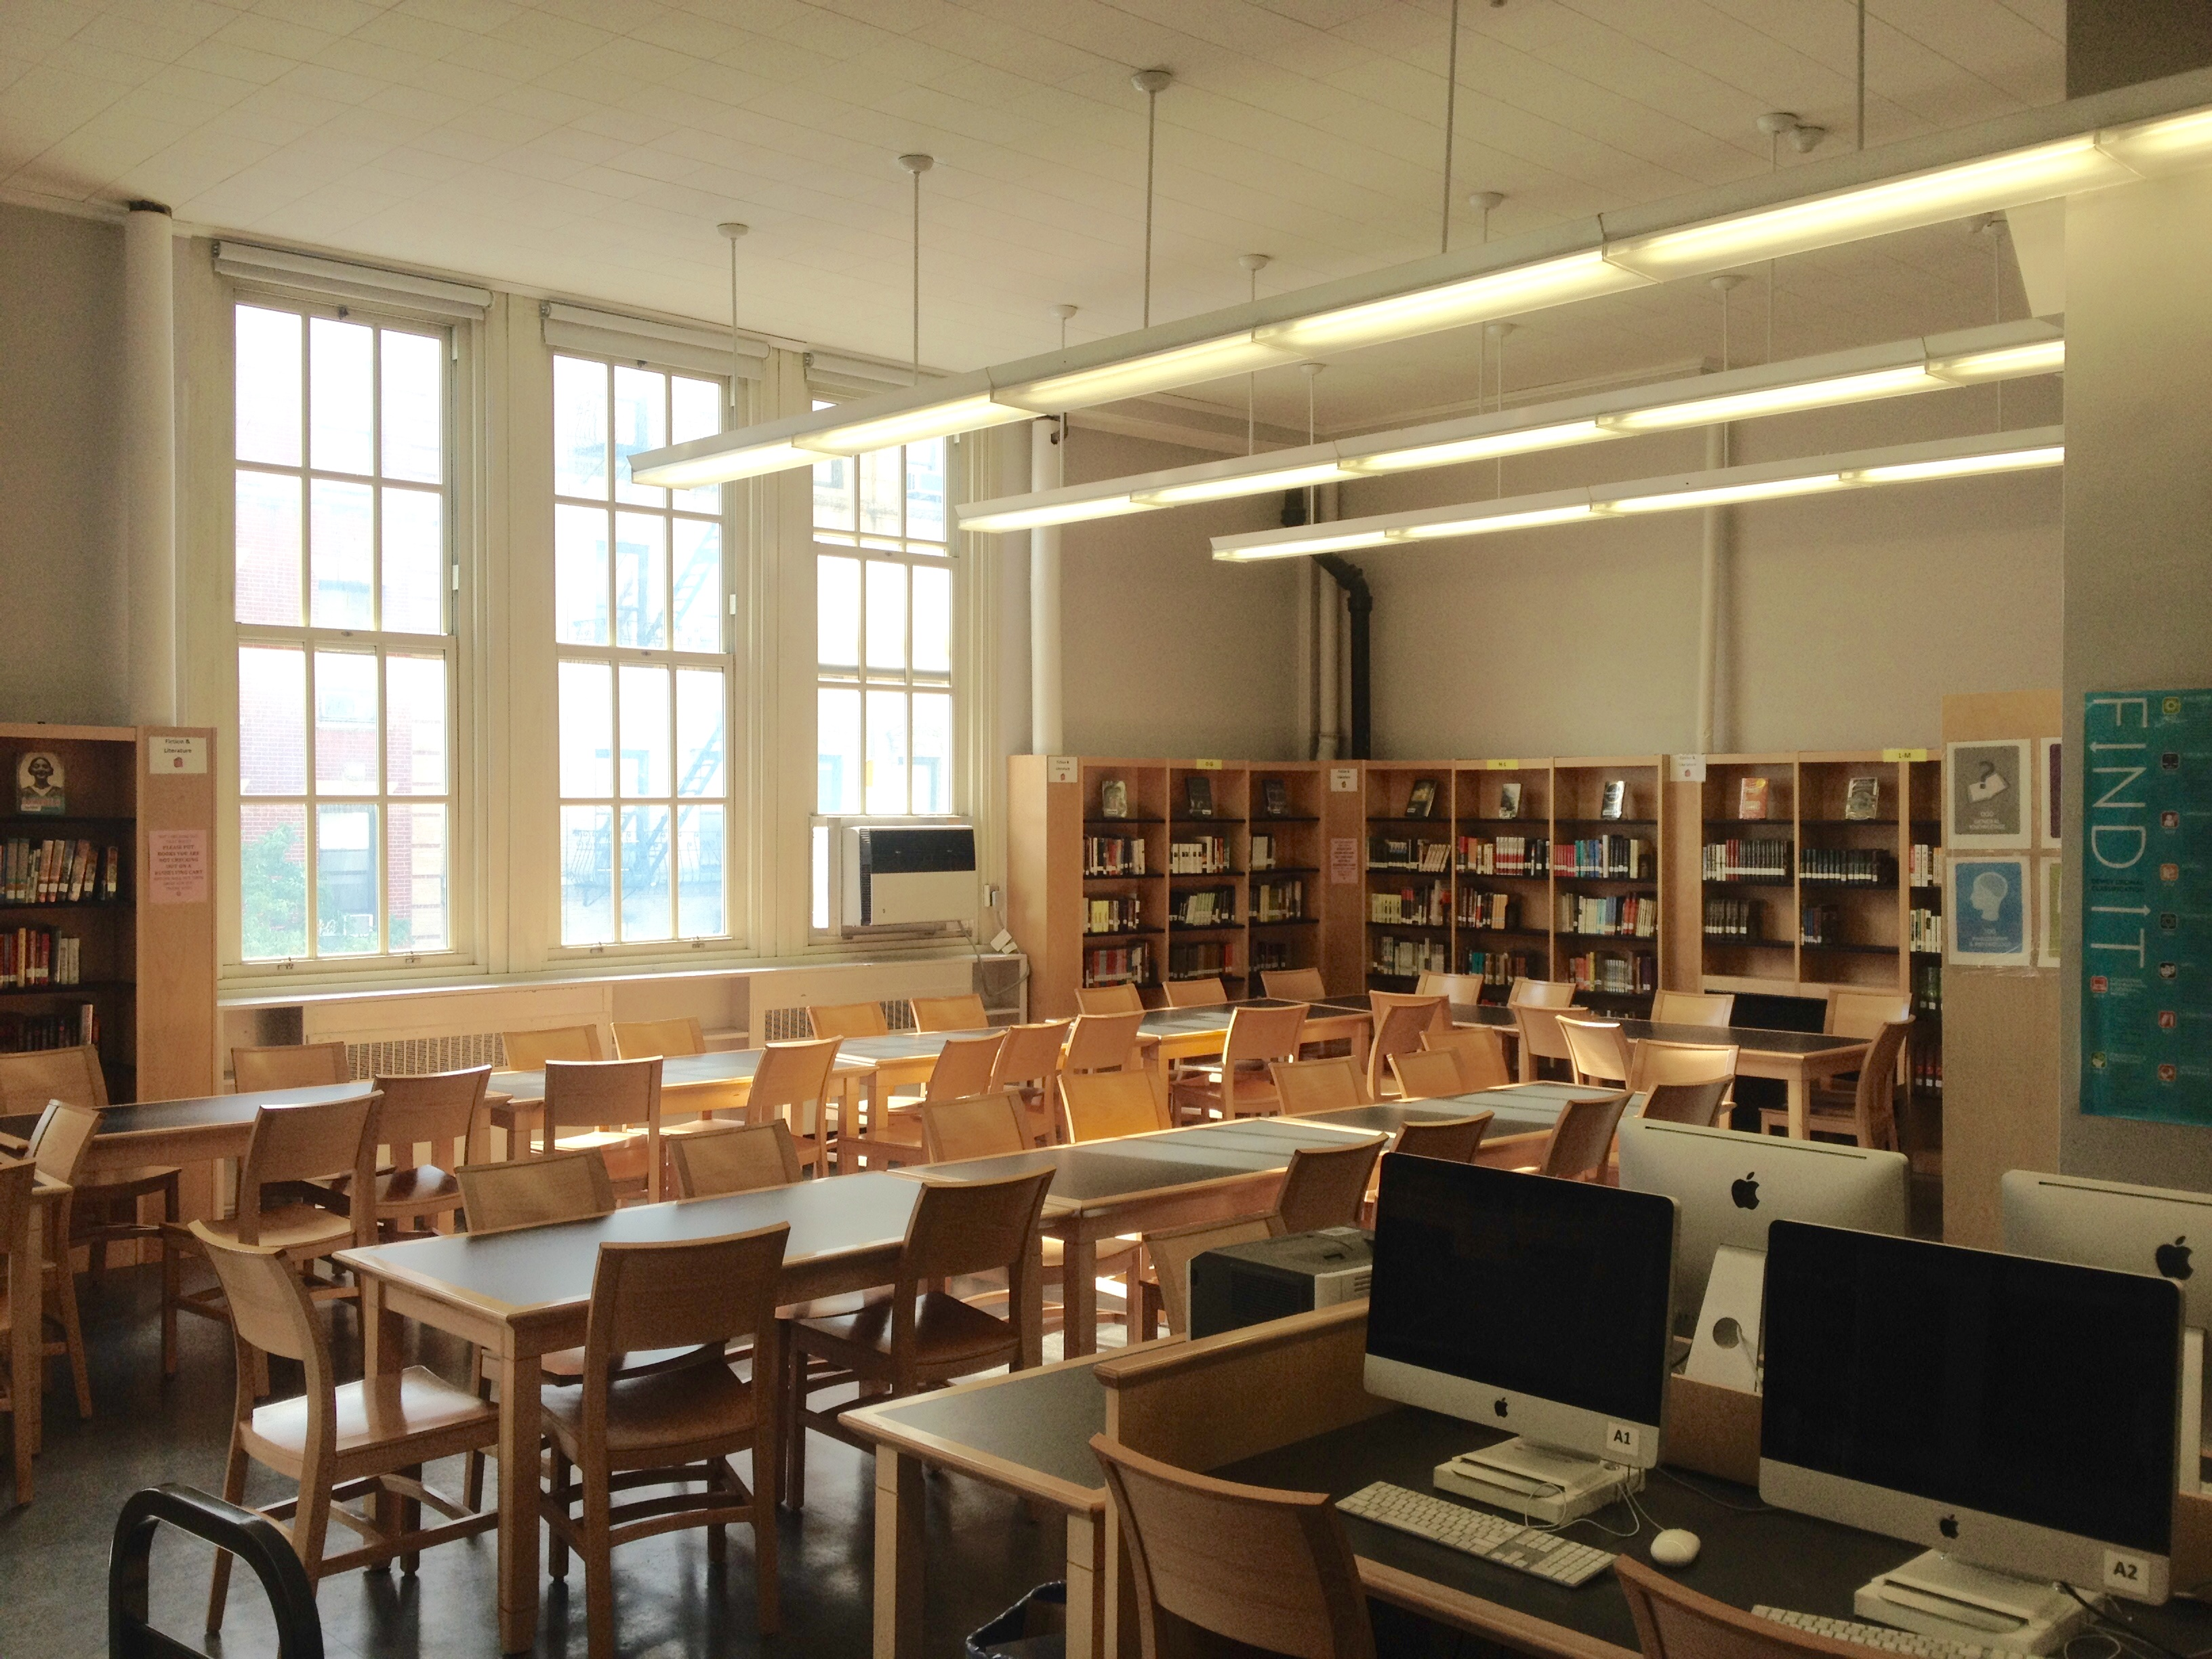 The HPHS Library can seat approximately 50 people and has 12 iMac computers and a printing station.